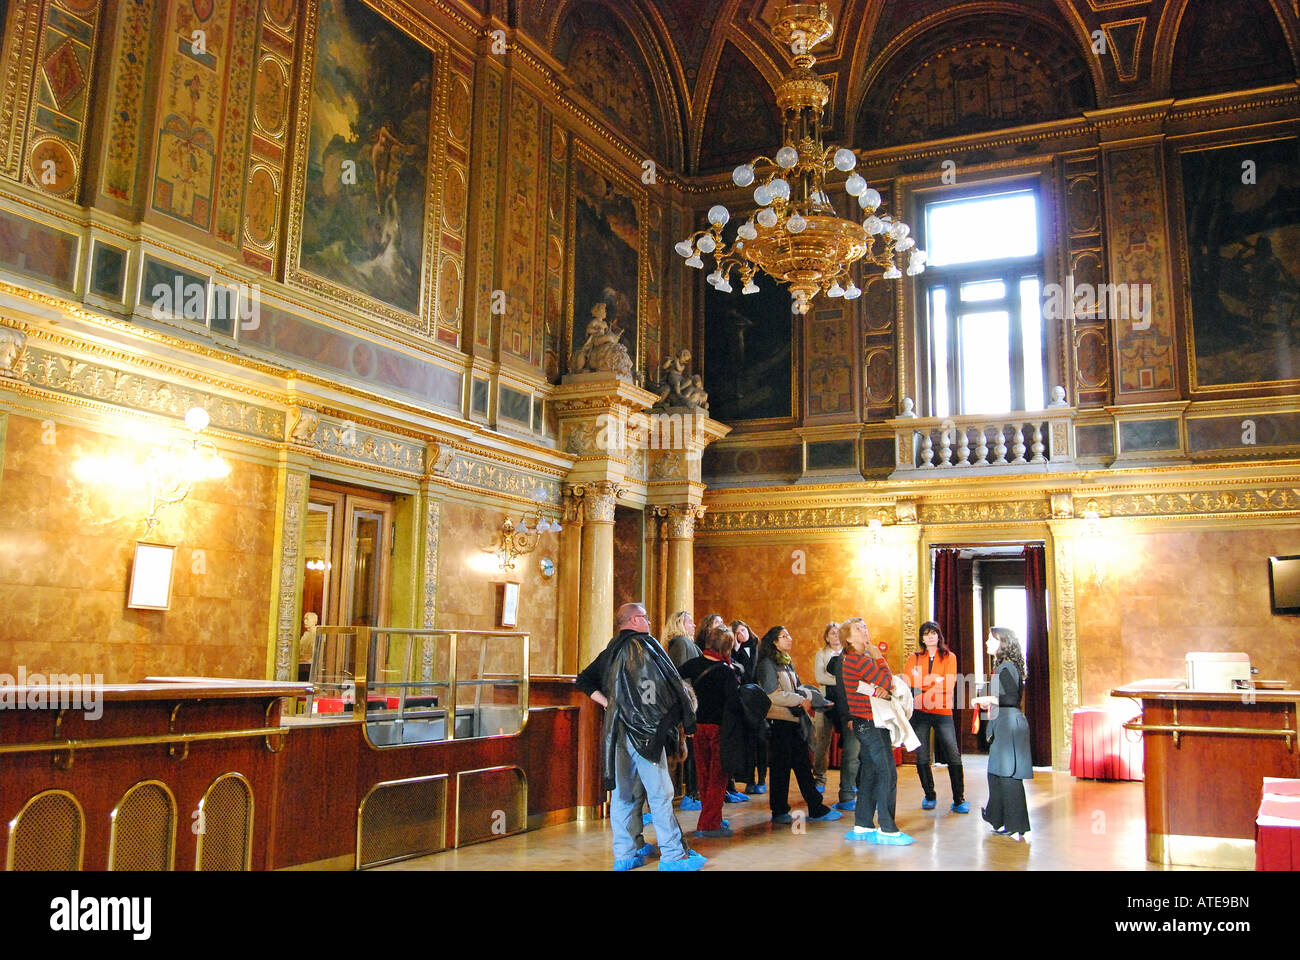 Interior rooms of State Opera House, Pest, Budapest, Republic of Hungary - Stock Image